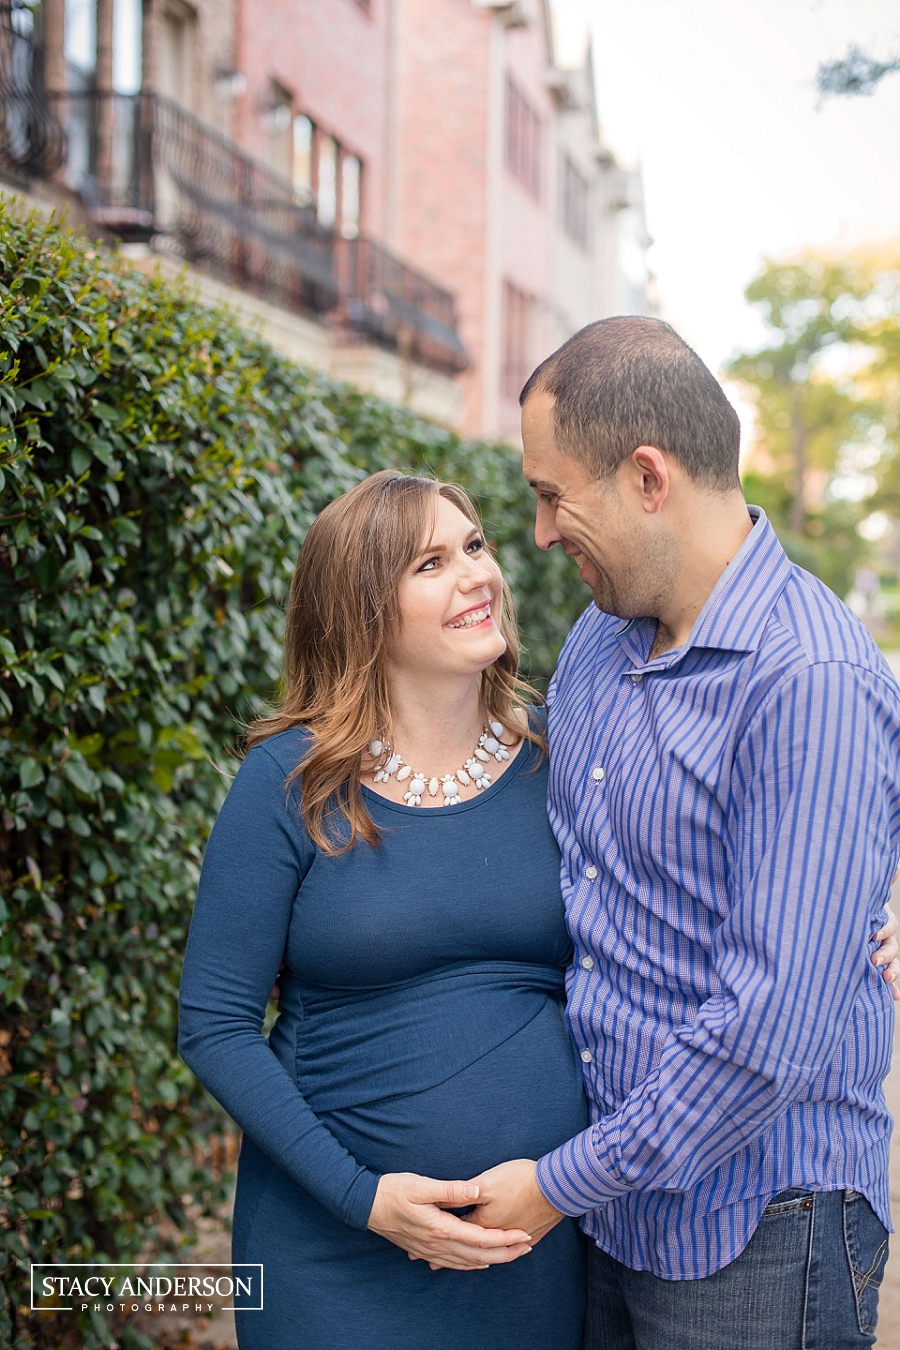 Stacy Anderson Photography Houston Maternity Photographer_1176